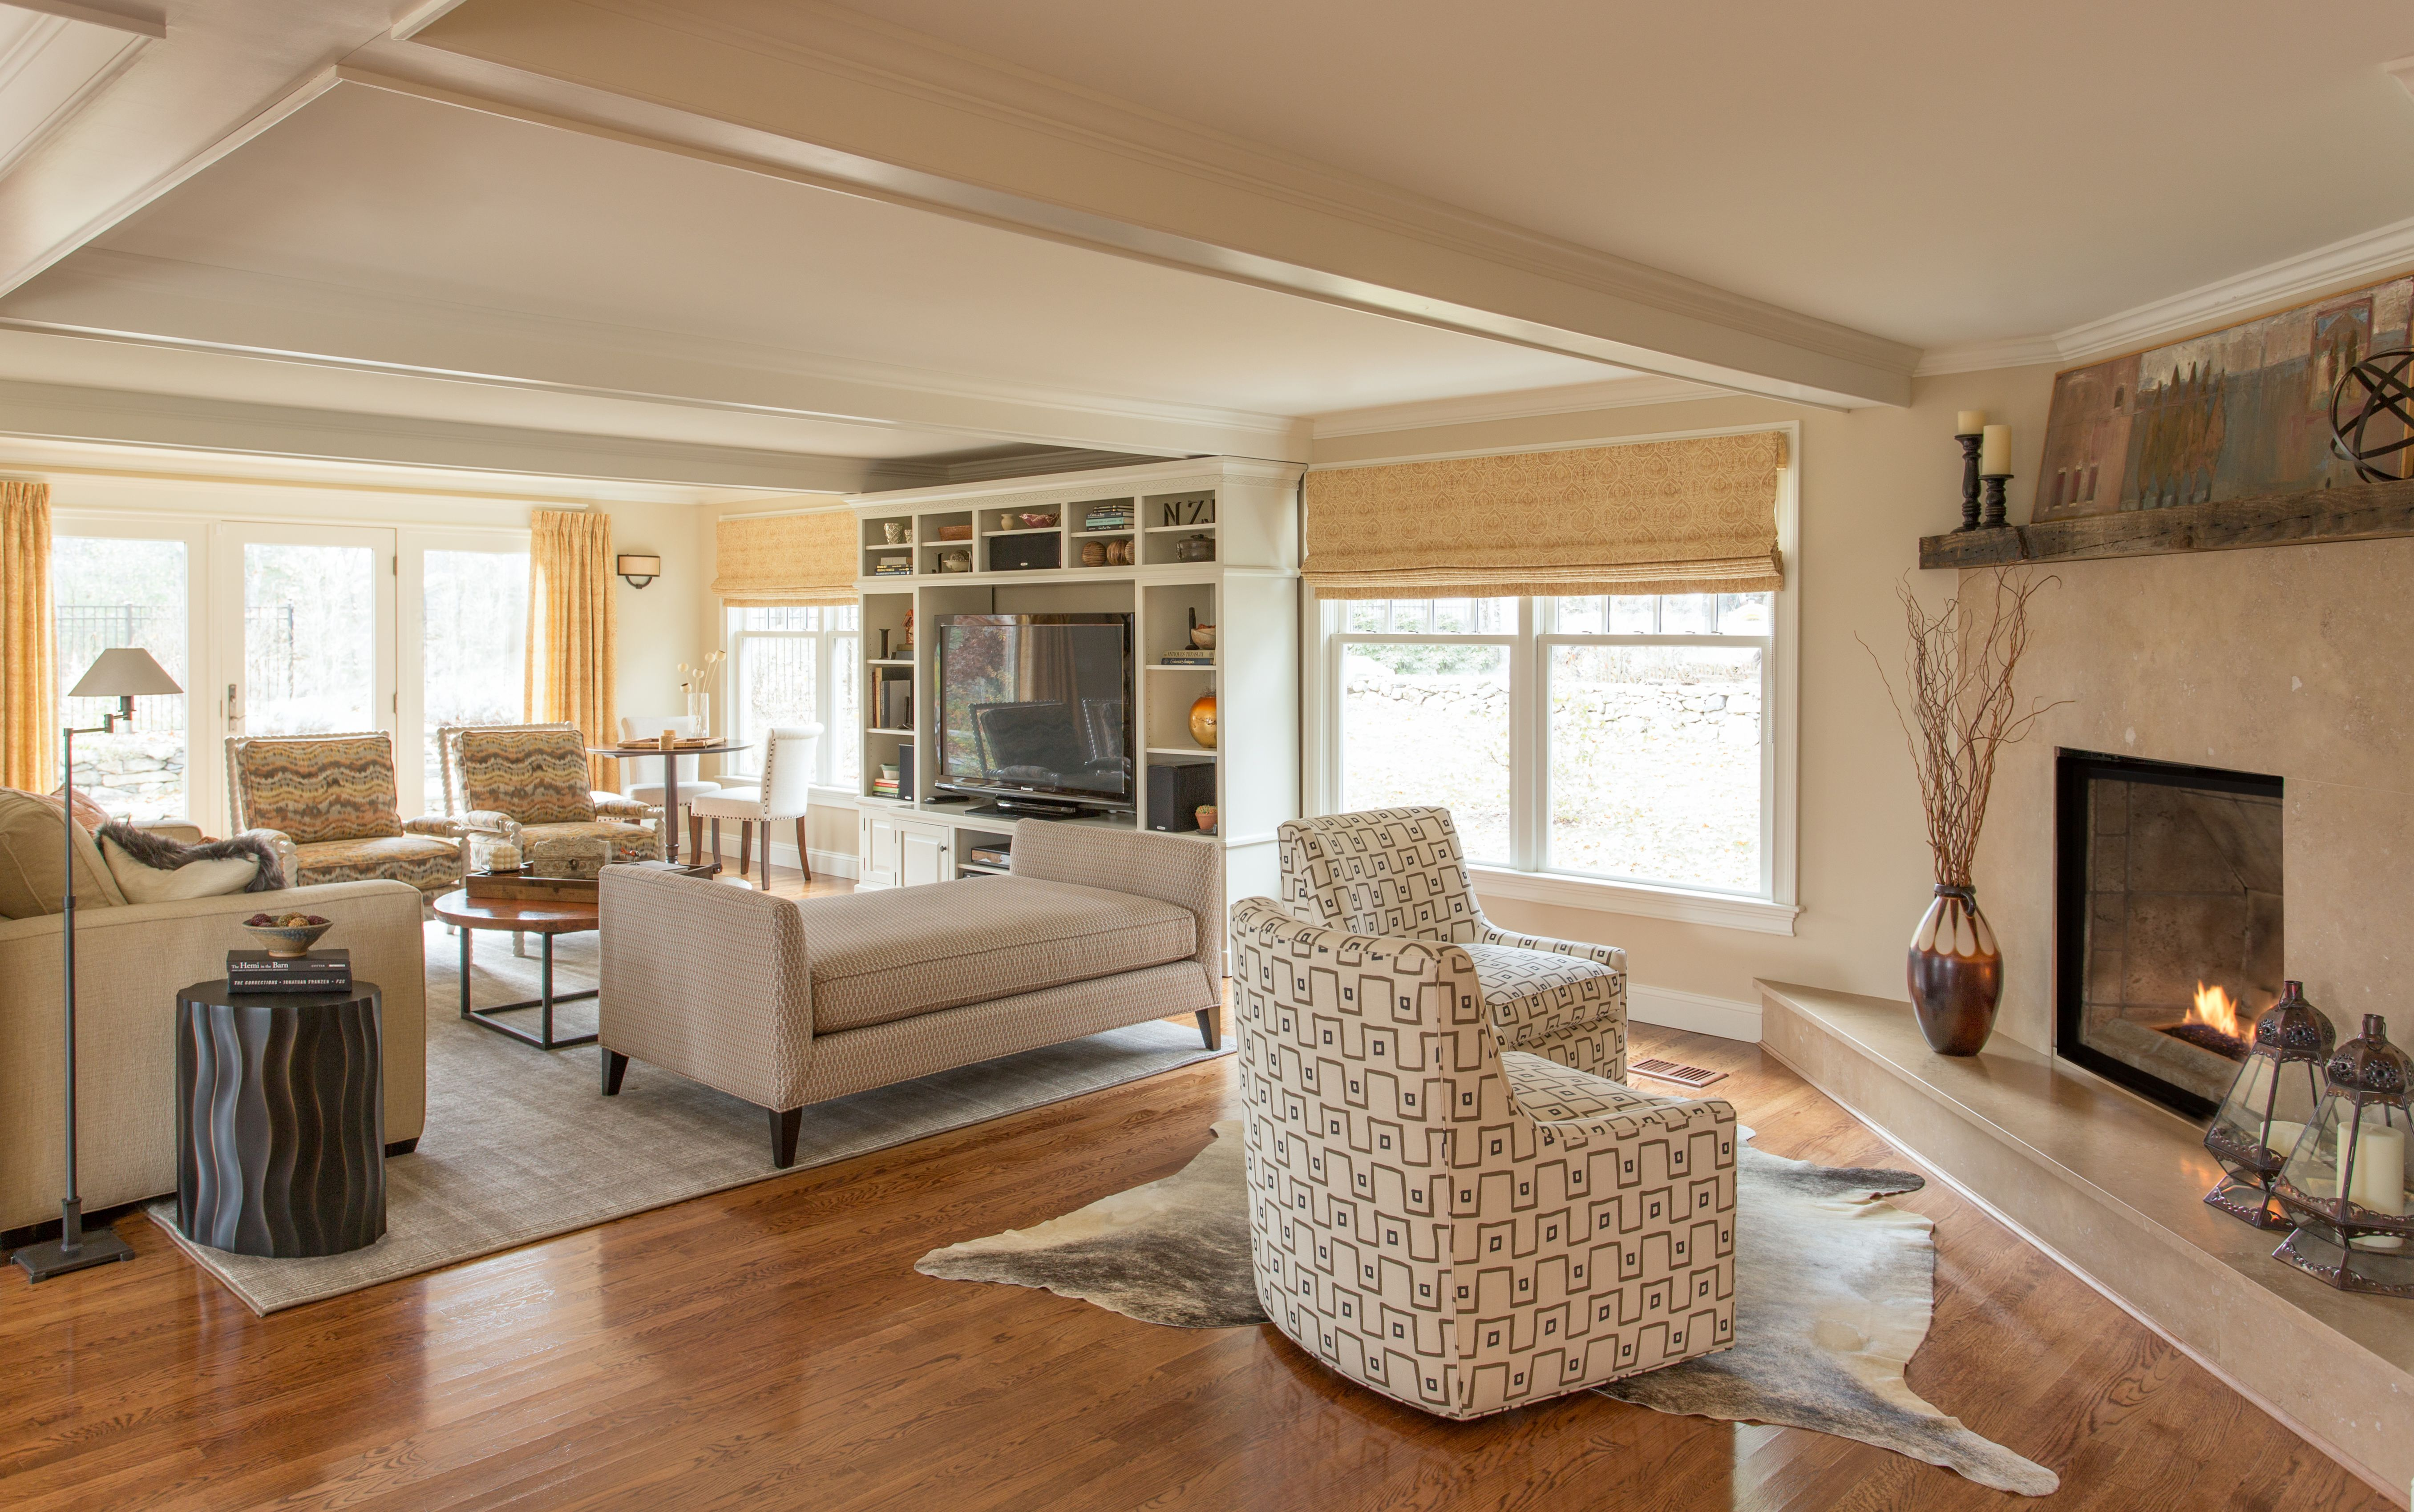 Project Reveal: Brown Moves Down, A Home Lights Up – Interiors for ...